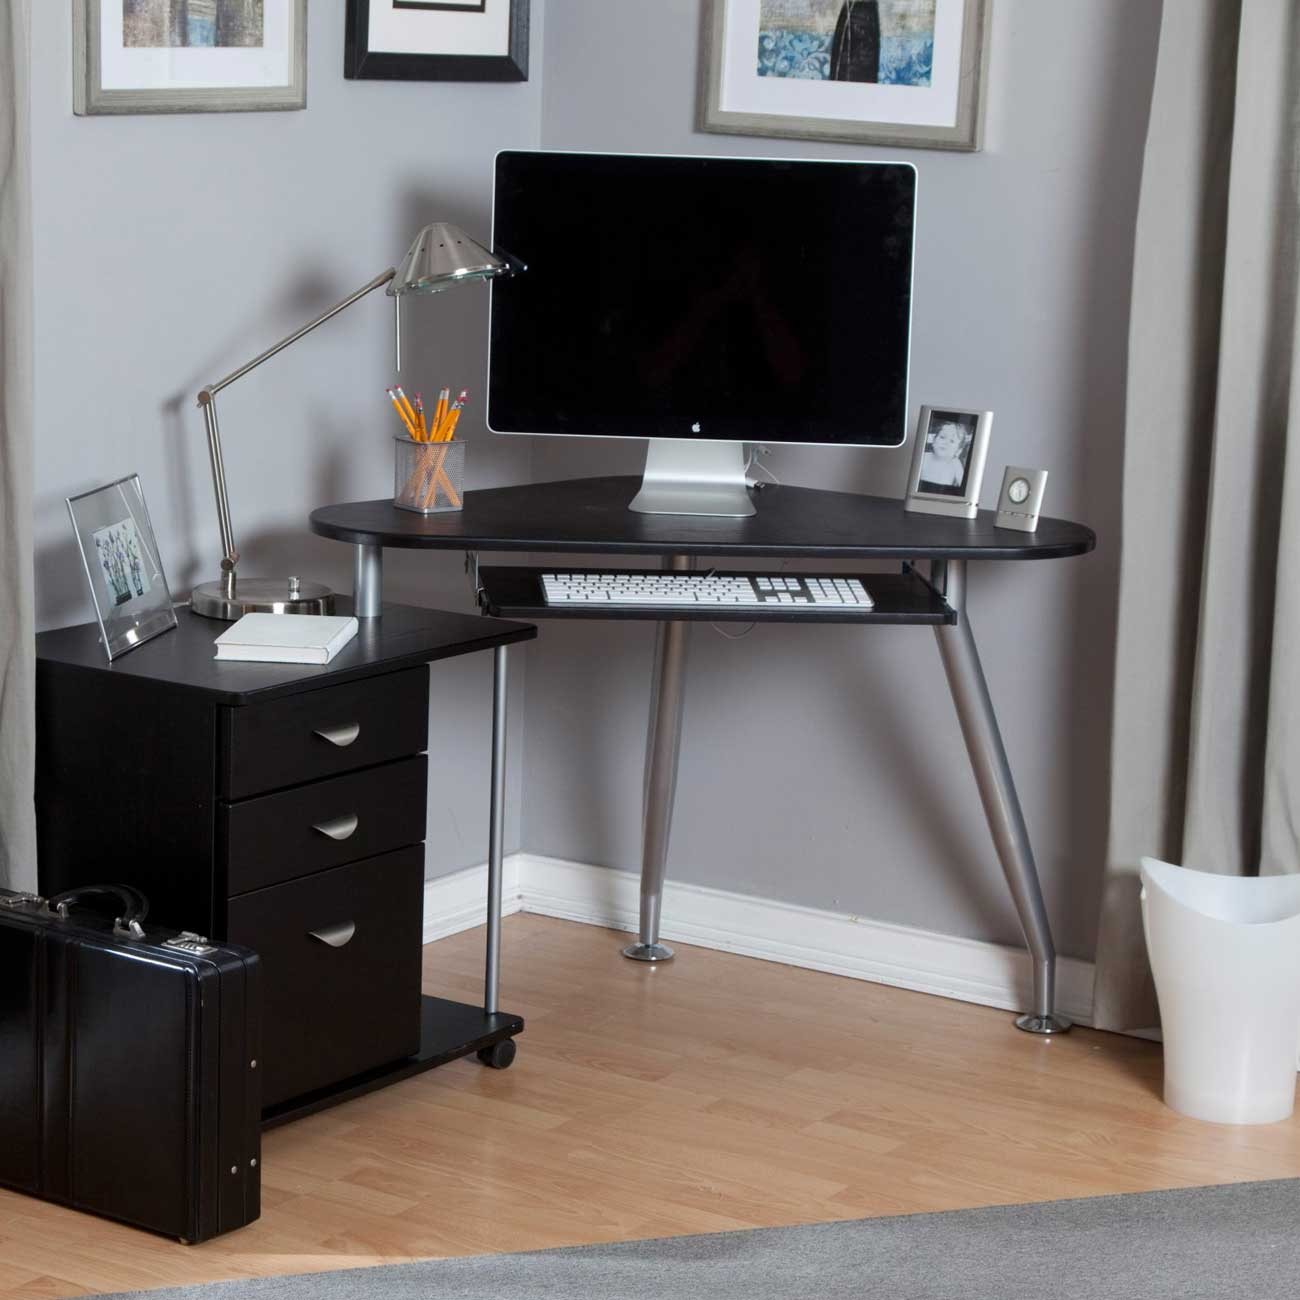 Toppline Corner Computer Desk with Rotating File Cabinet and Compact Design